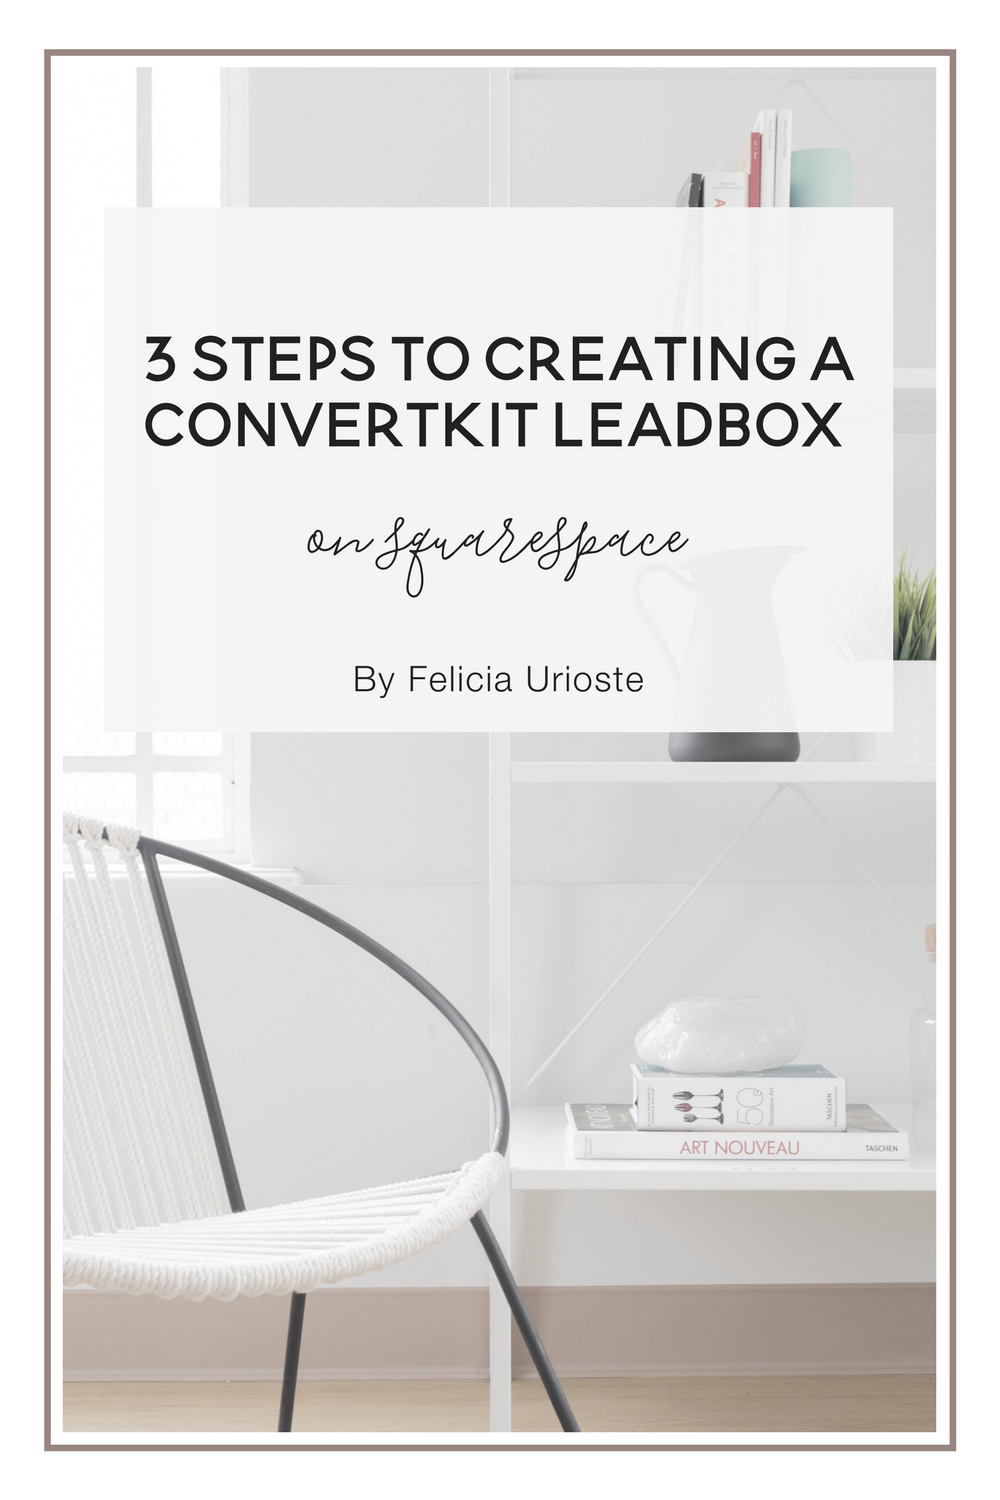 Add a convertkit leadbox to Squarespace